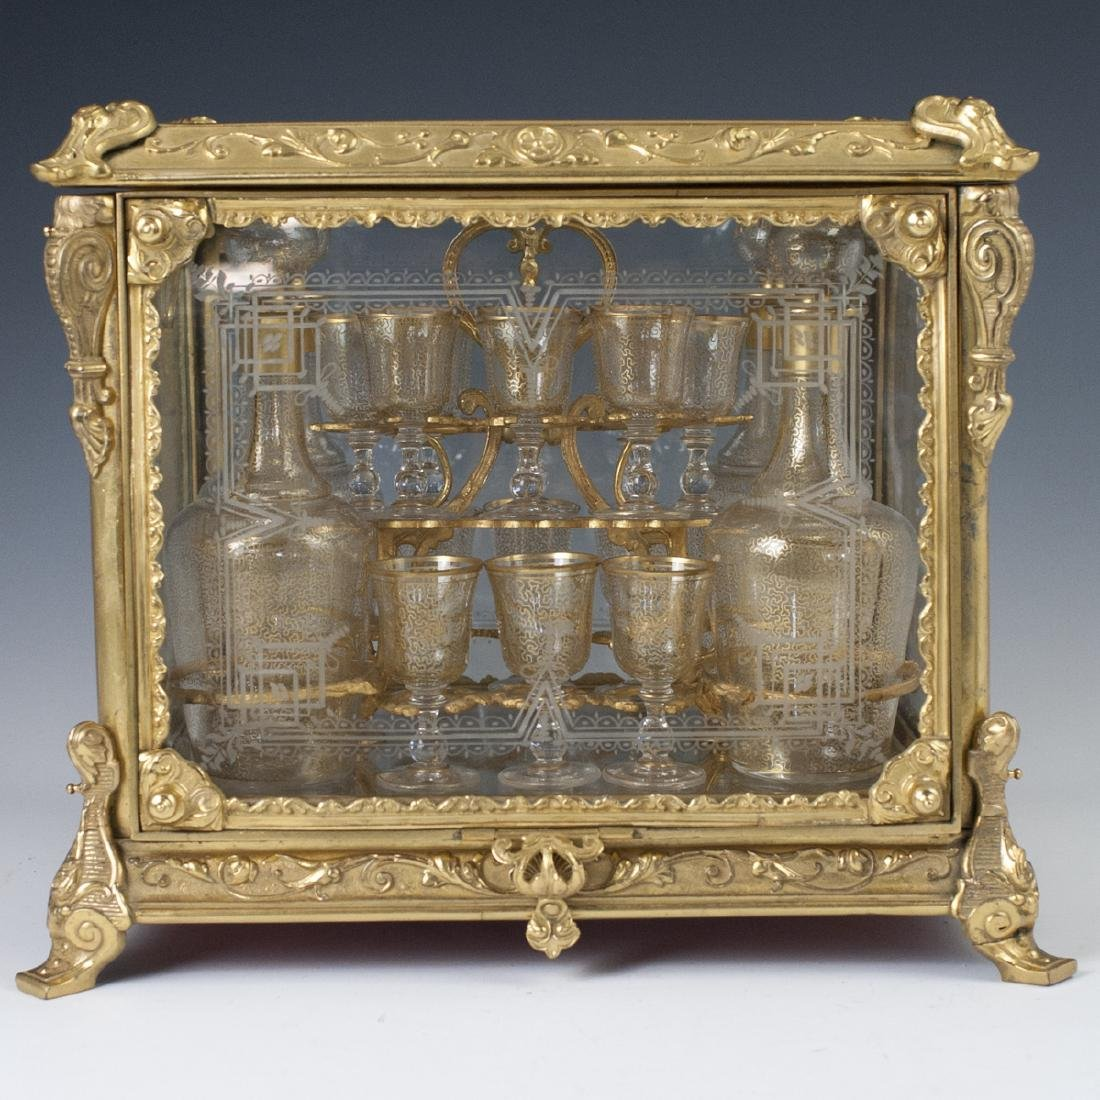 Antique French Ormolu Etched Crystal Tantalus Set